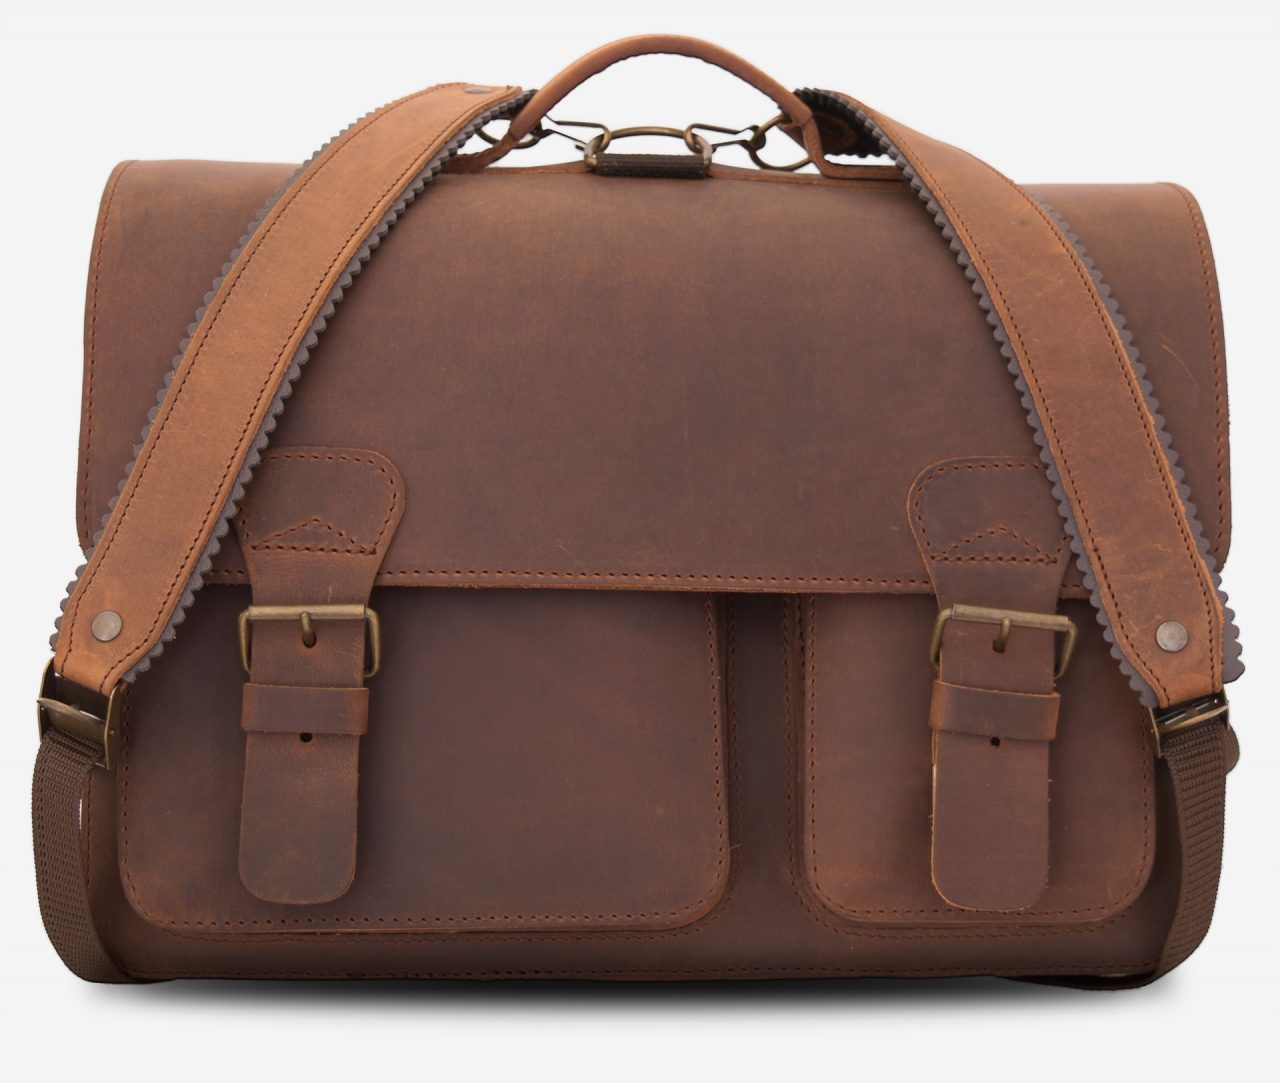 Front view of large brown leather satchel briefcase fitted with leather back straps.